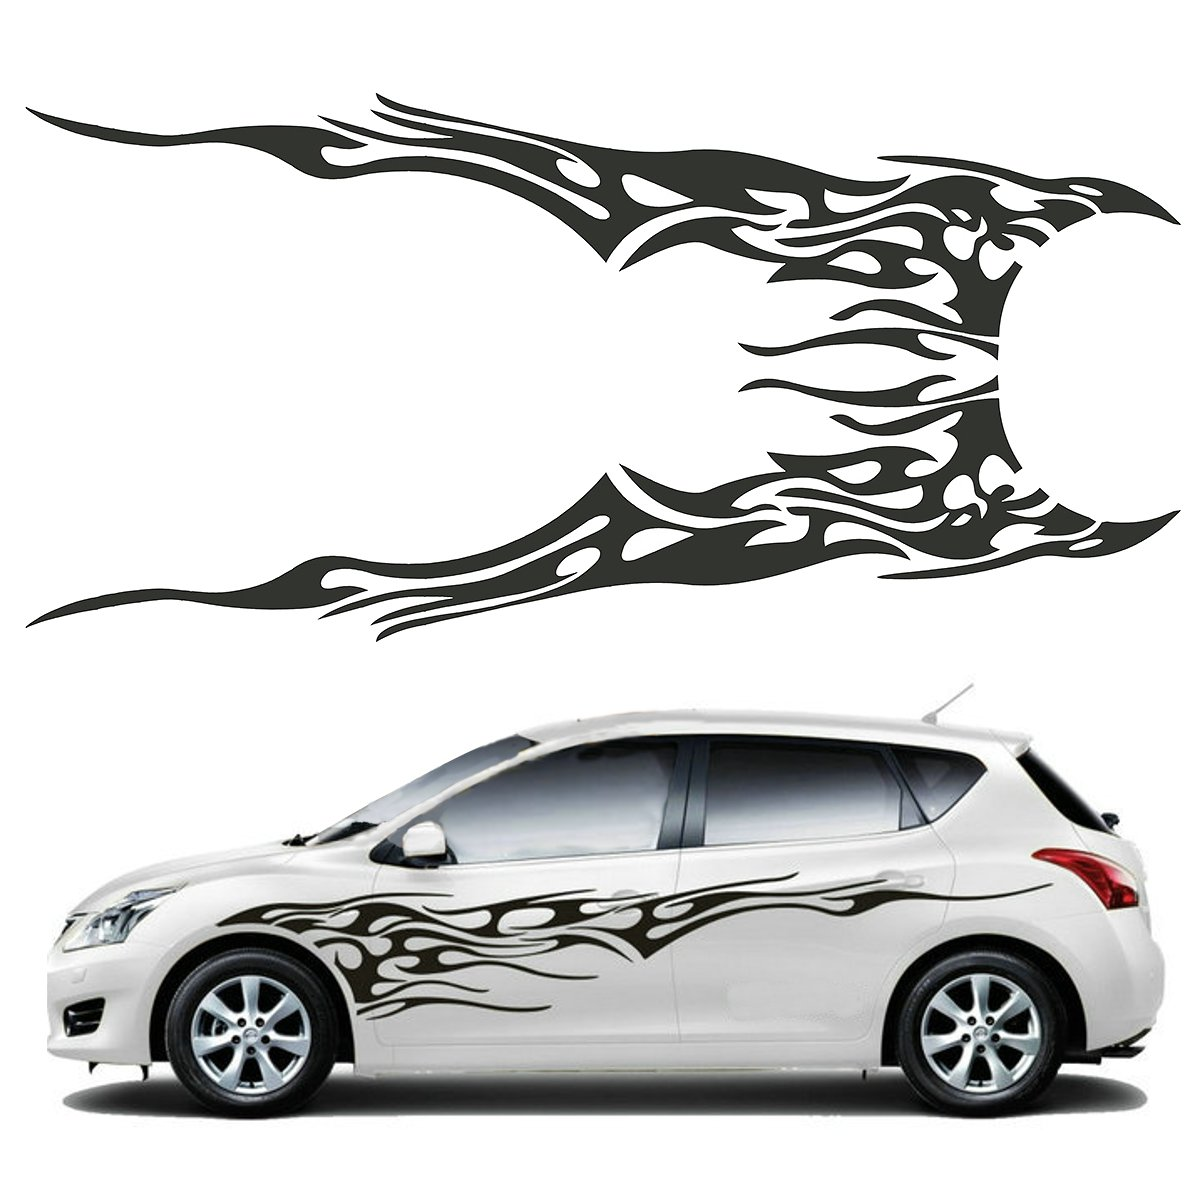 Pair 210 5 x 48cm black universal car flame graphics vinyl car side sticker decal waterproof